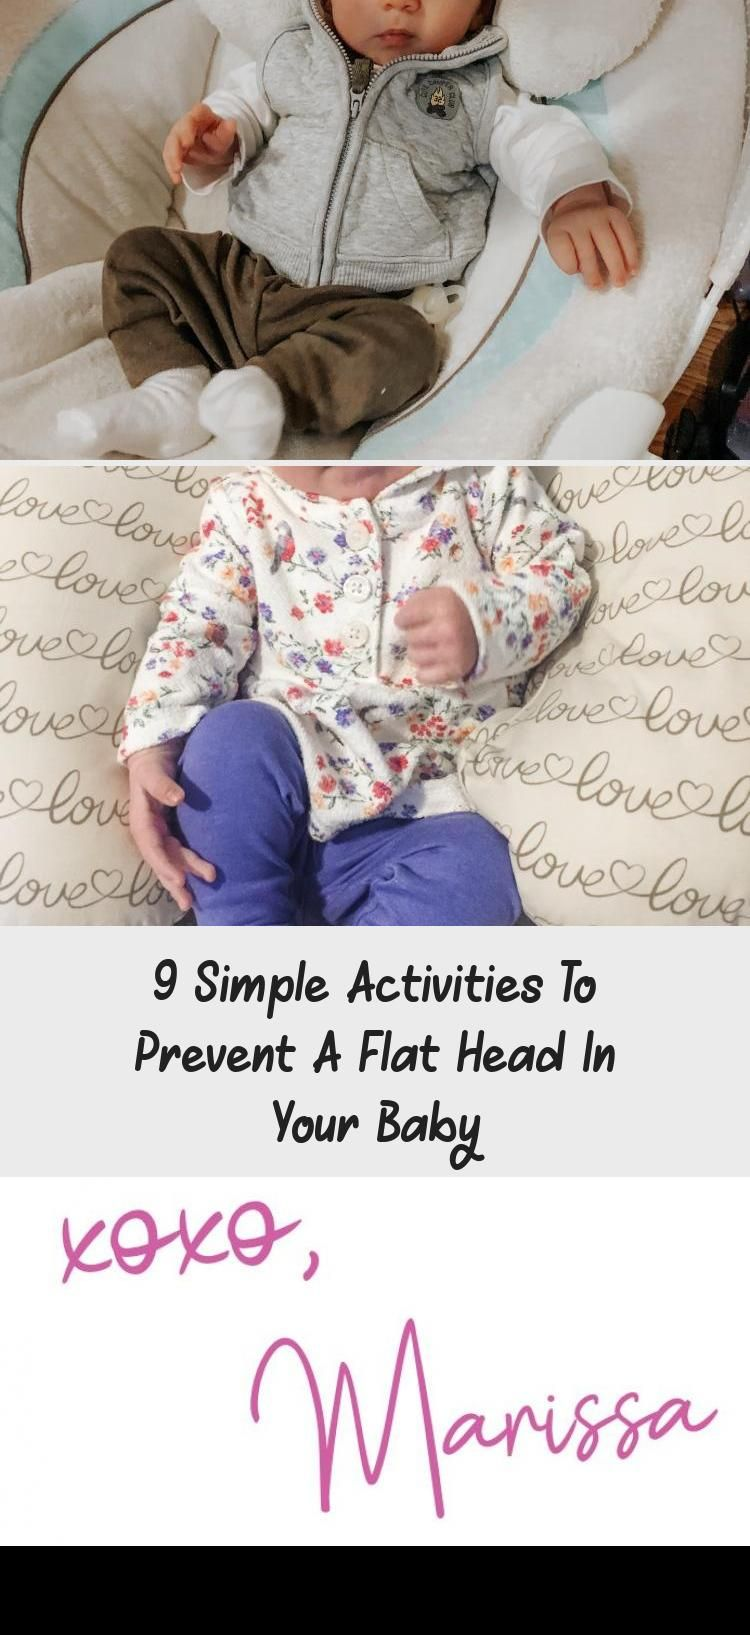 9 Simple Activities To Prevent A Flat Head In Your Baby ...